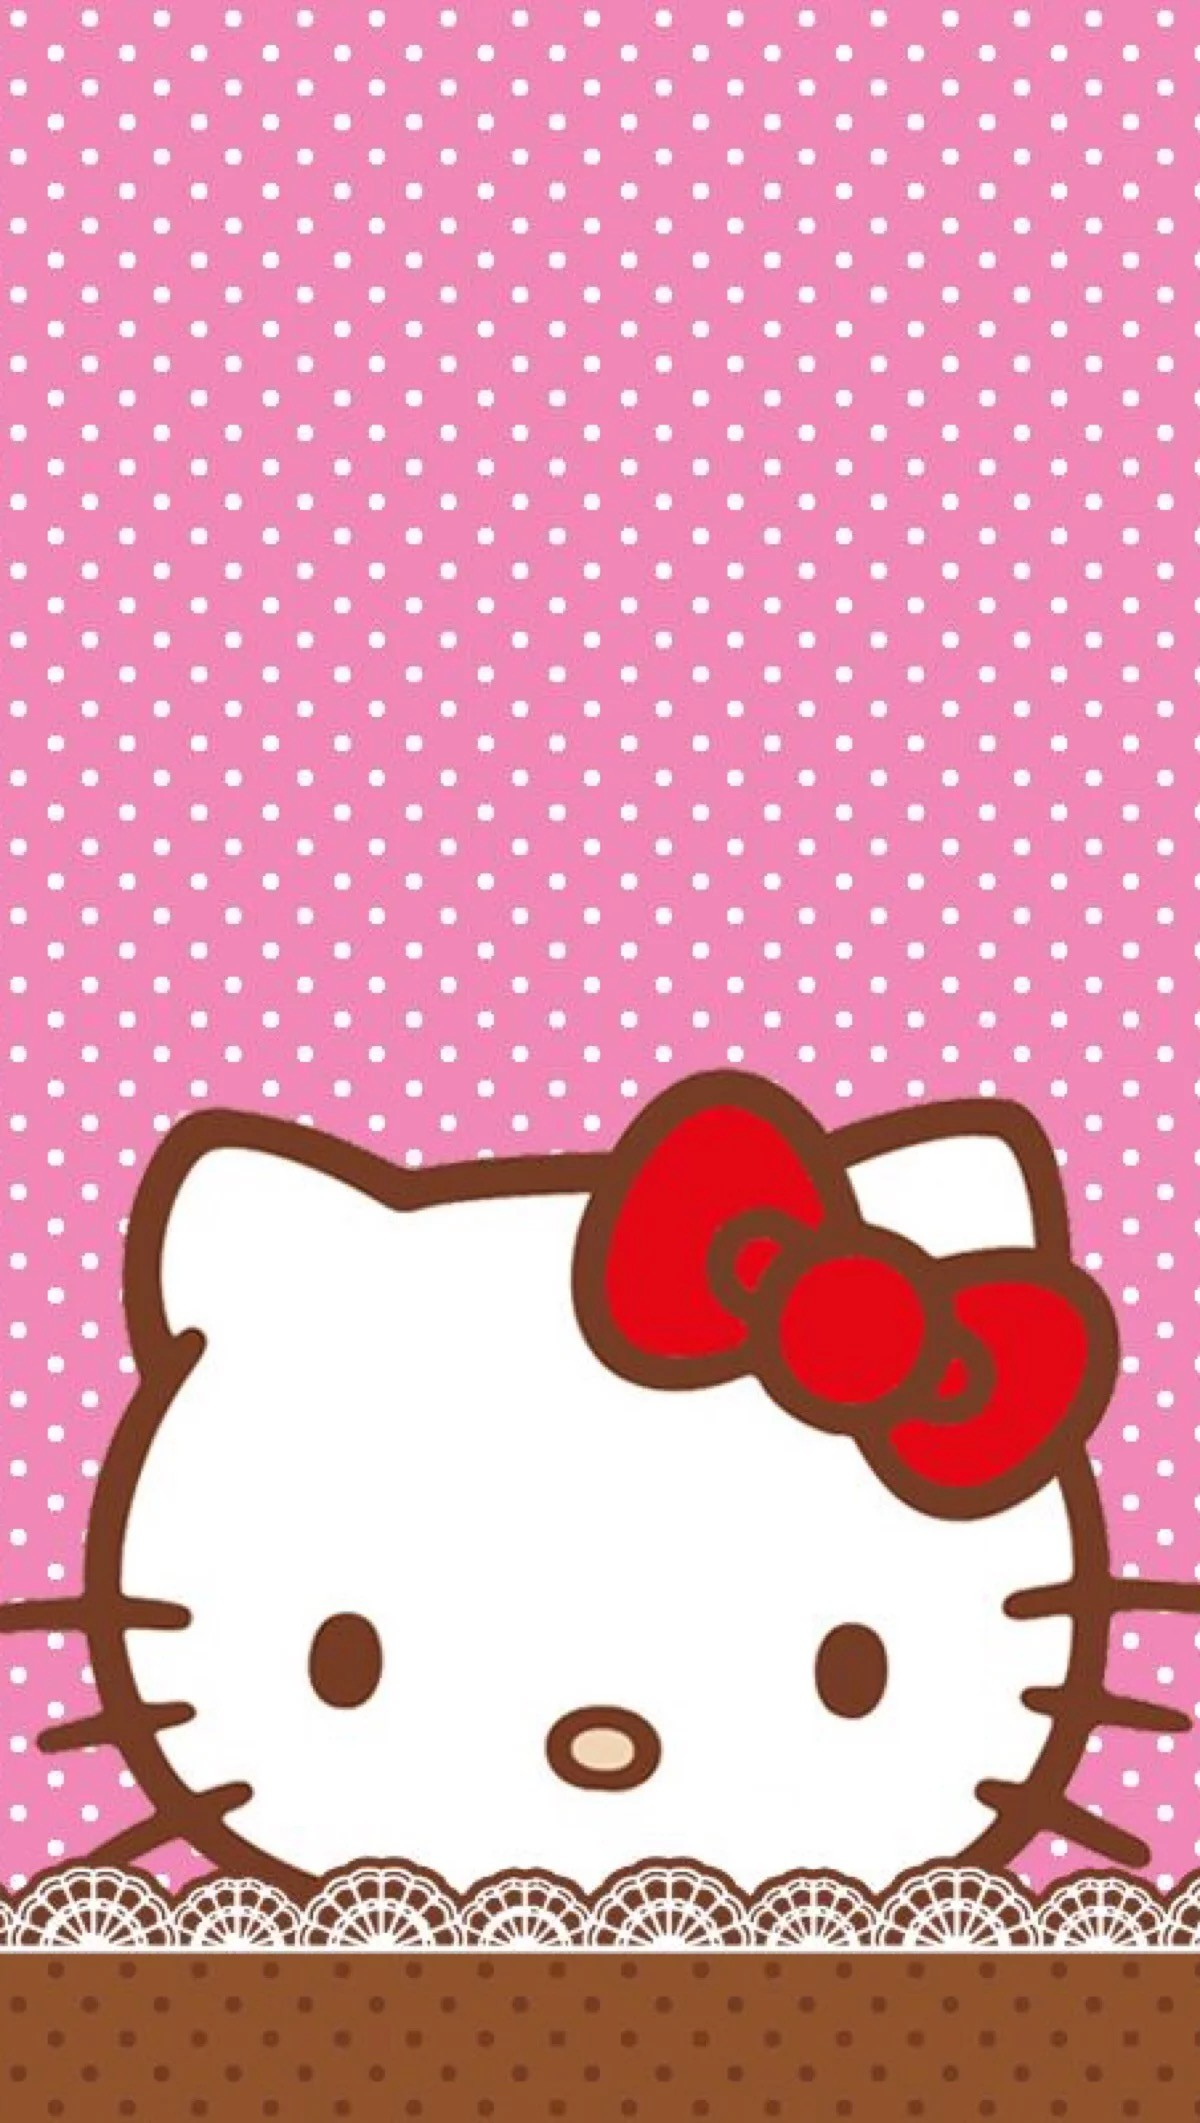 Simple Wallpaper Hello Kitty Punk - 725163-new-hello-kitty-wallpaper-for-pc-1200x2123-for-4k-monitor  2018_336550.jpg